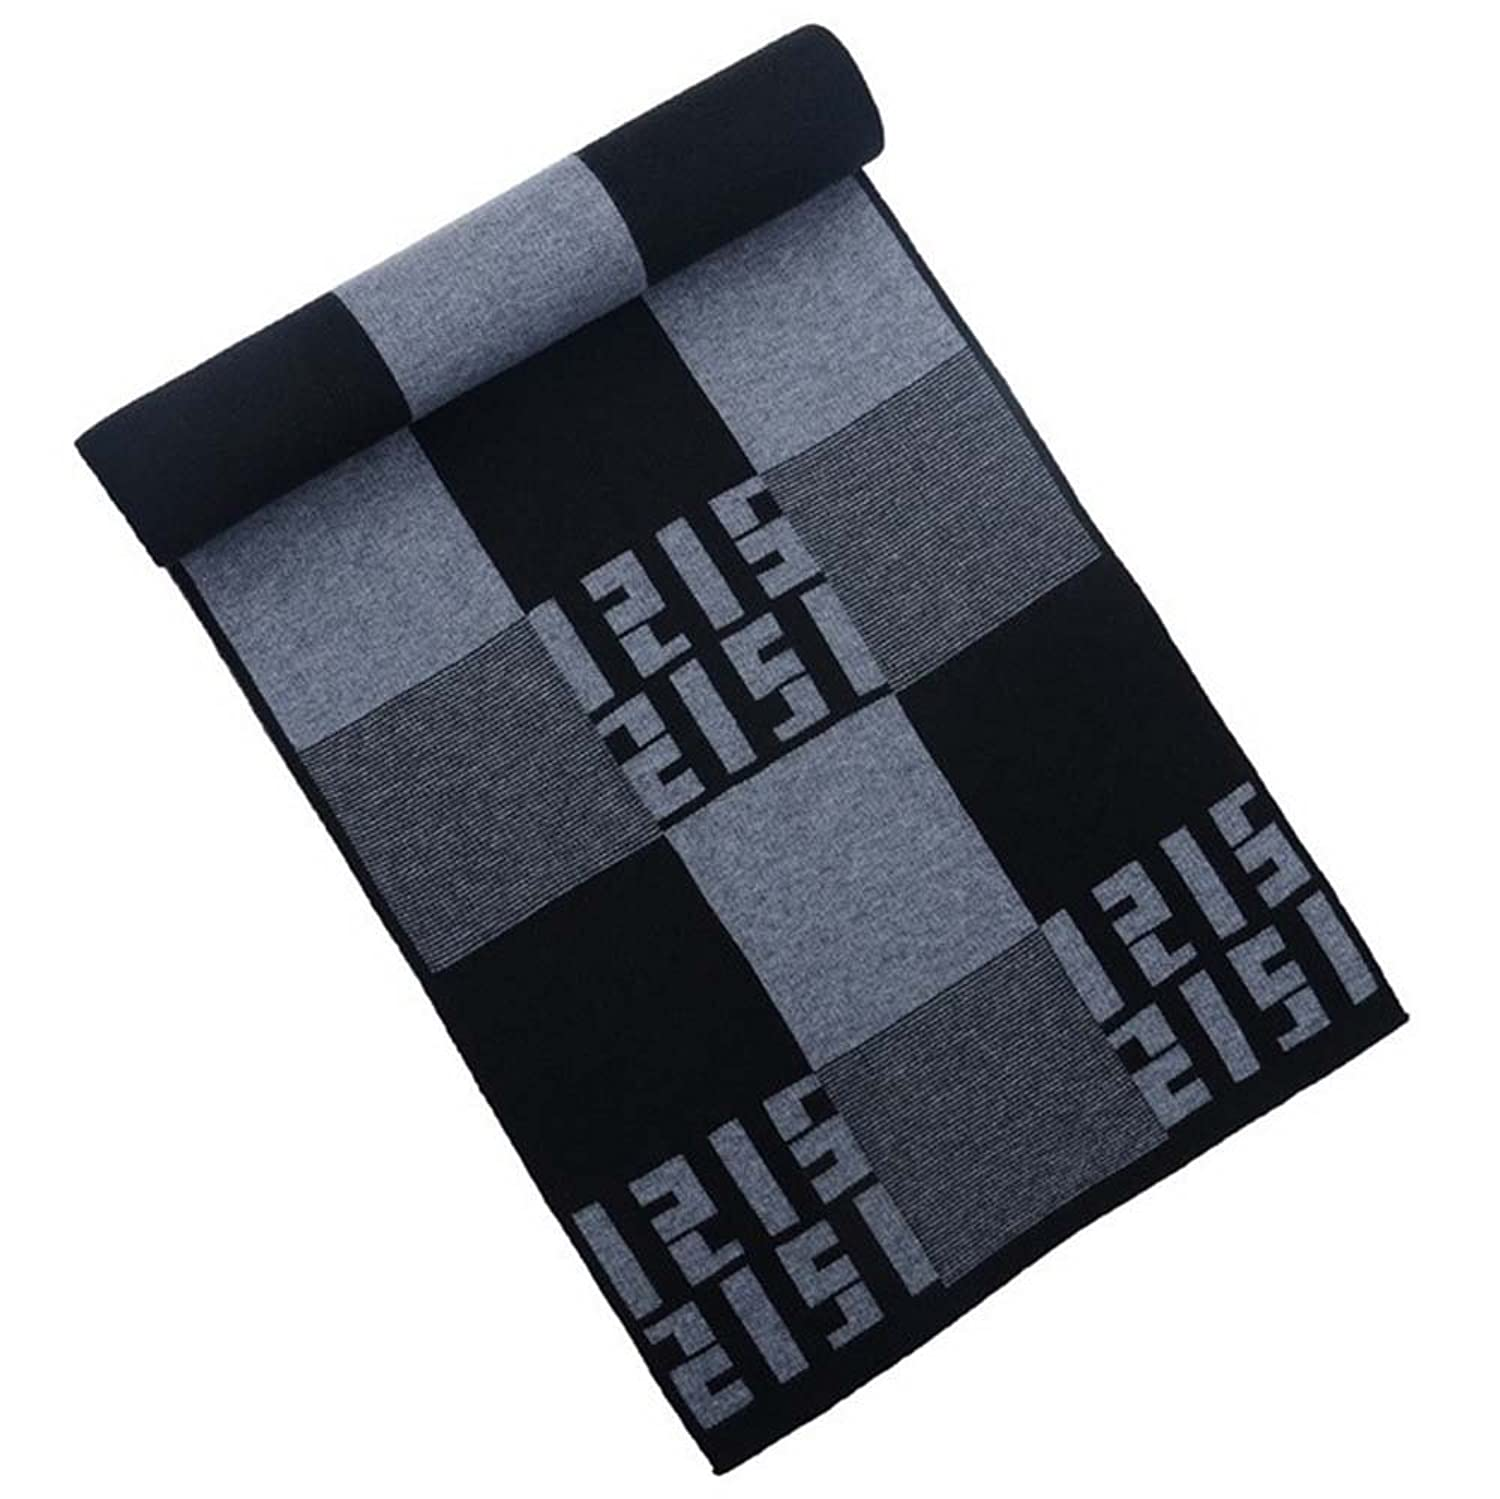 The new men's winter thick knitted scarf Korean scarf classic plaid scarves